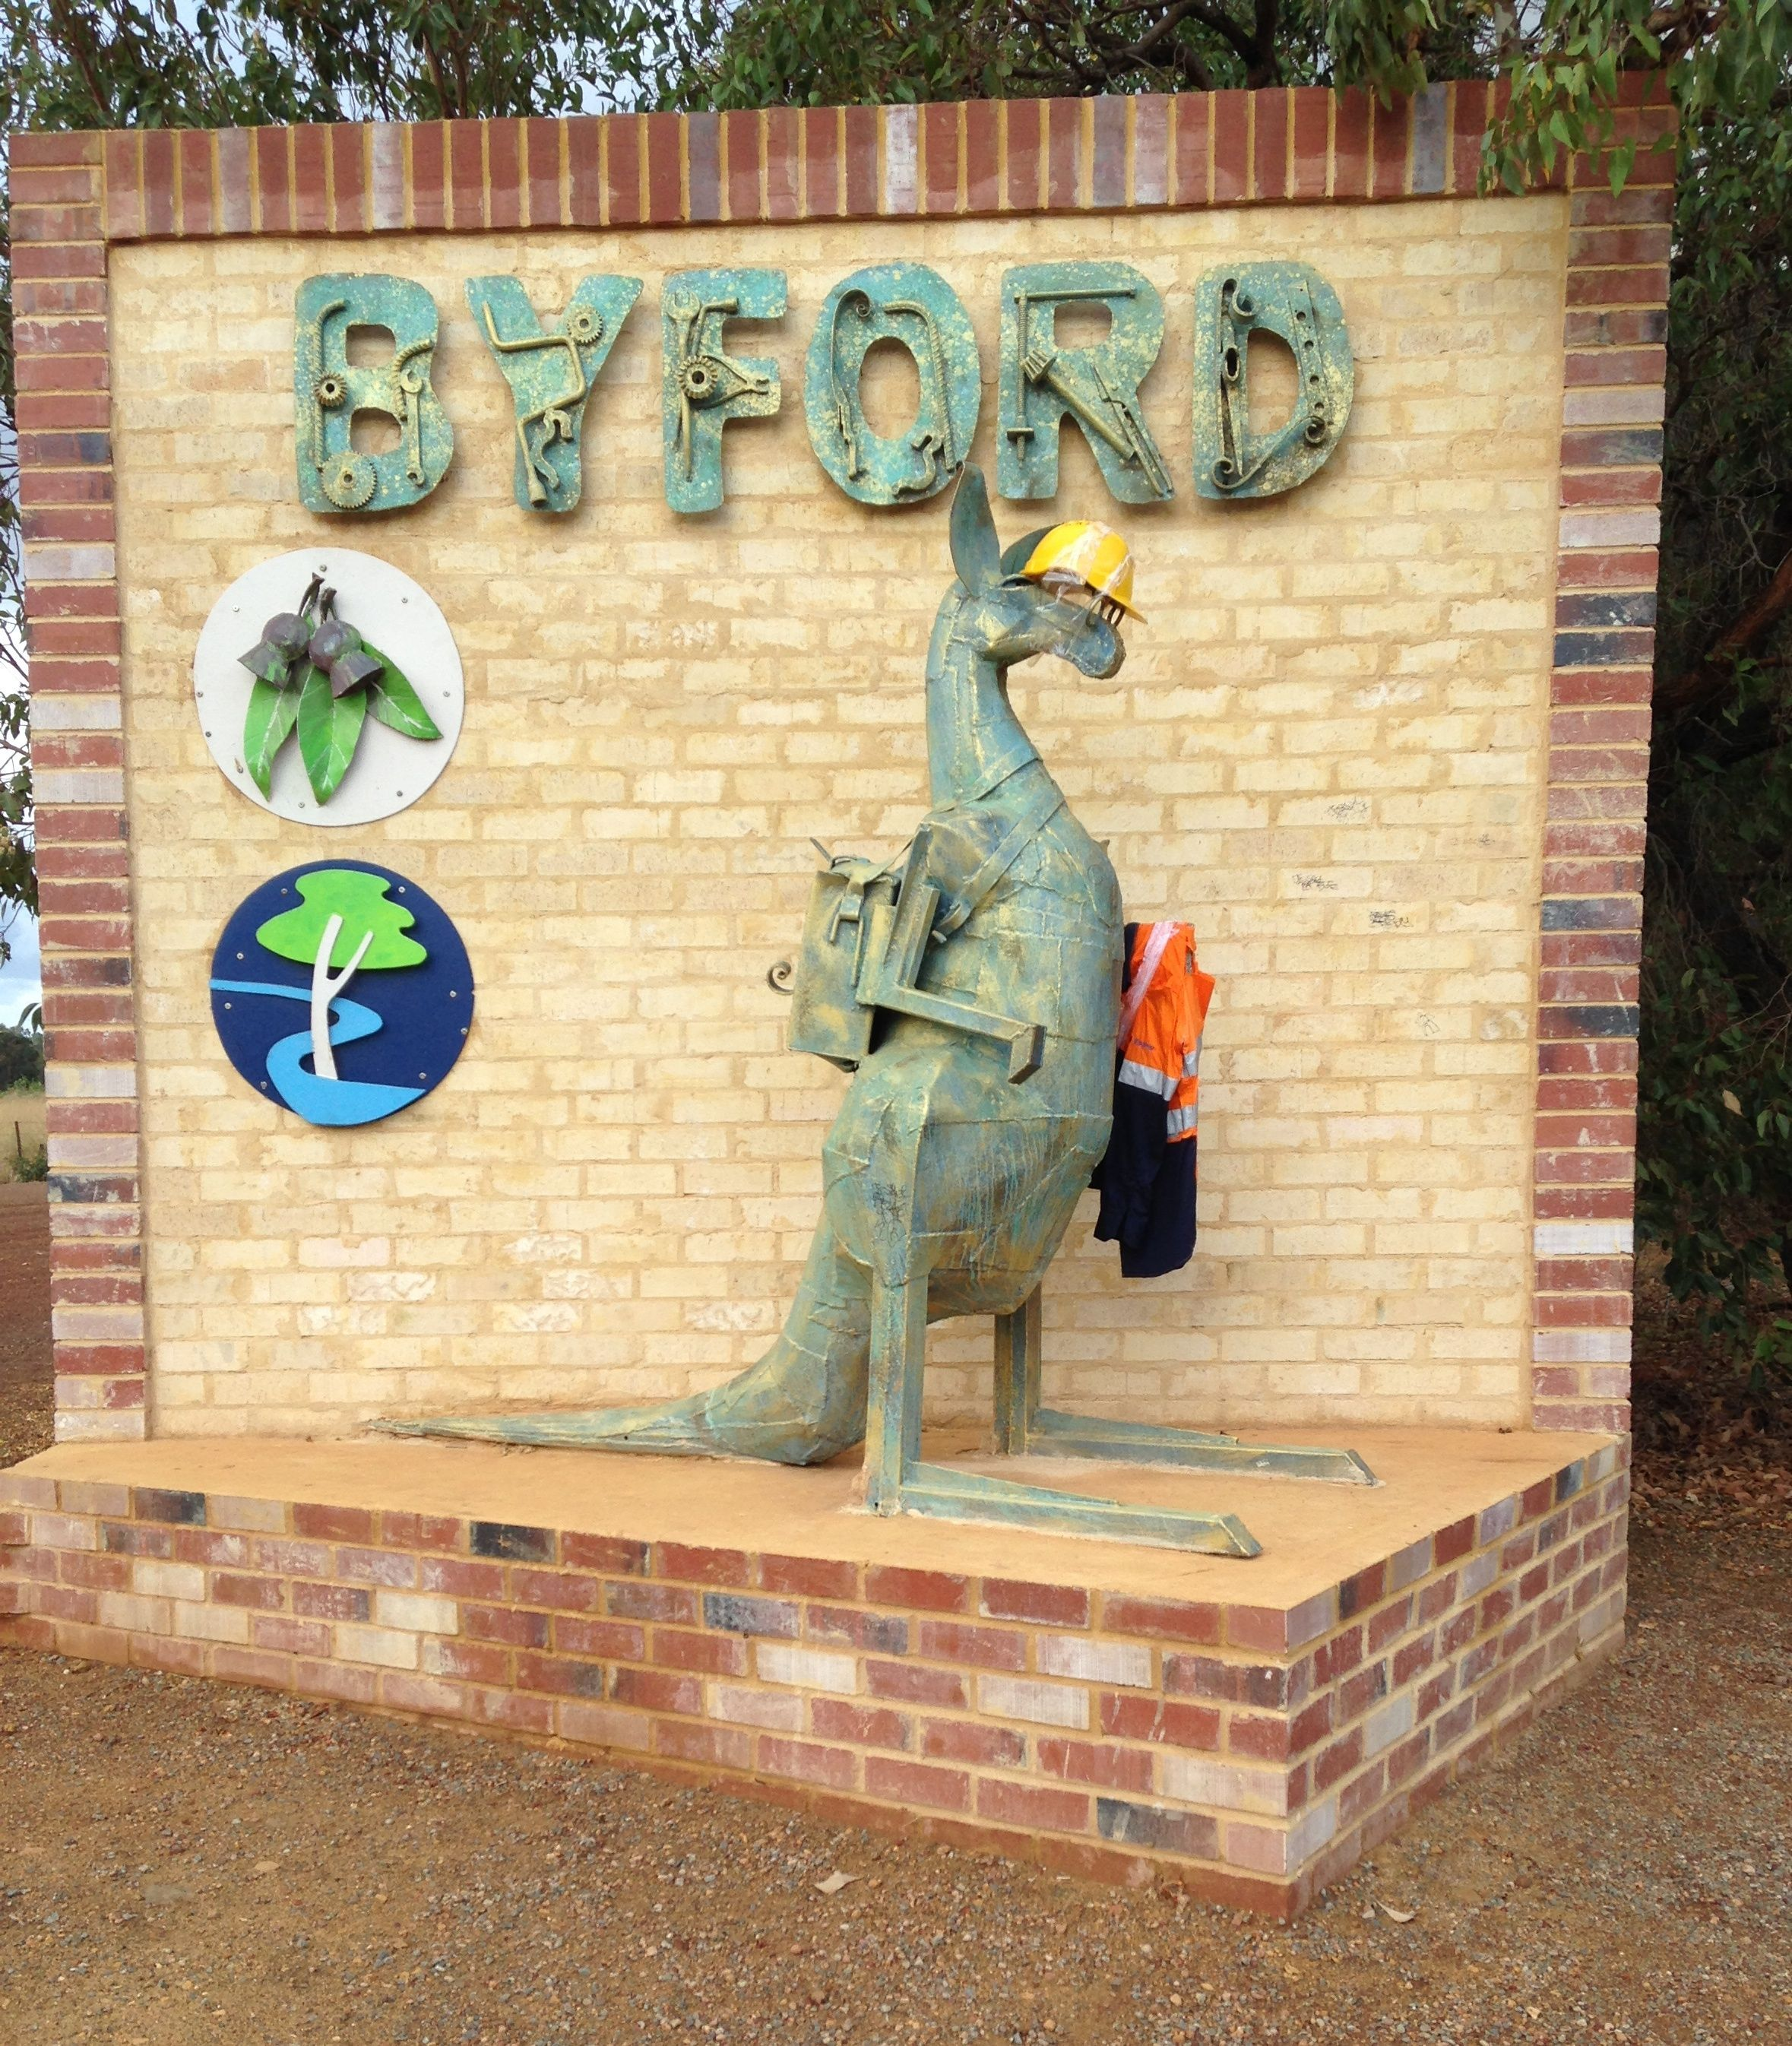 Byford_sculpture_southern_entry_dressed_September_2015Byford_sculpture_southern_entry_dressed_September_2015